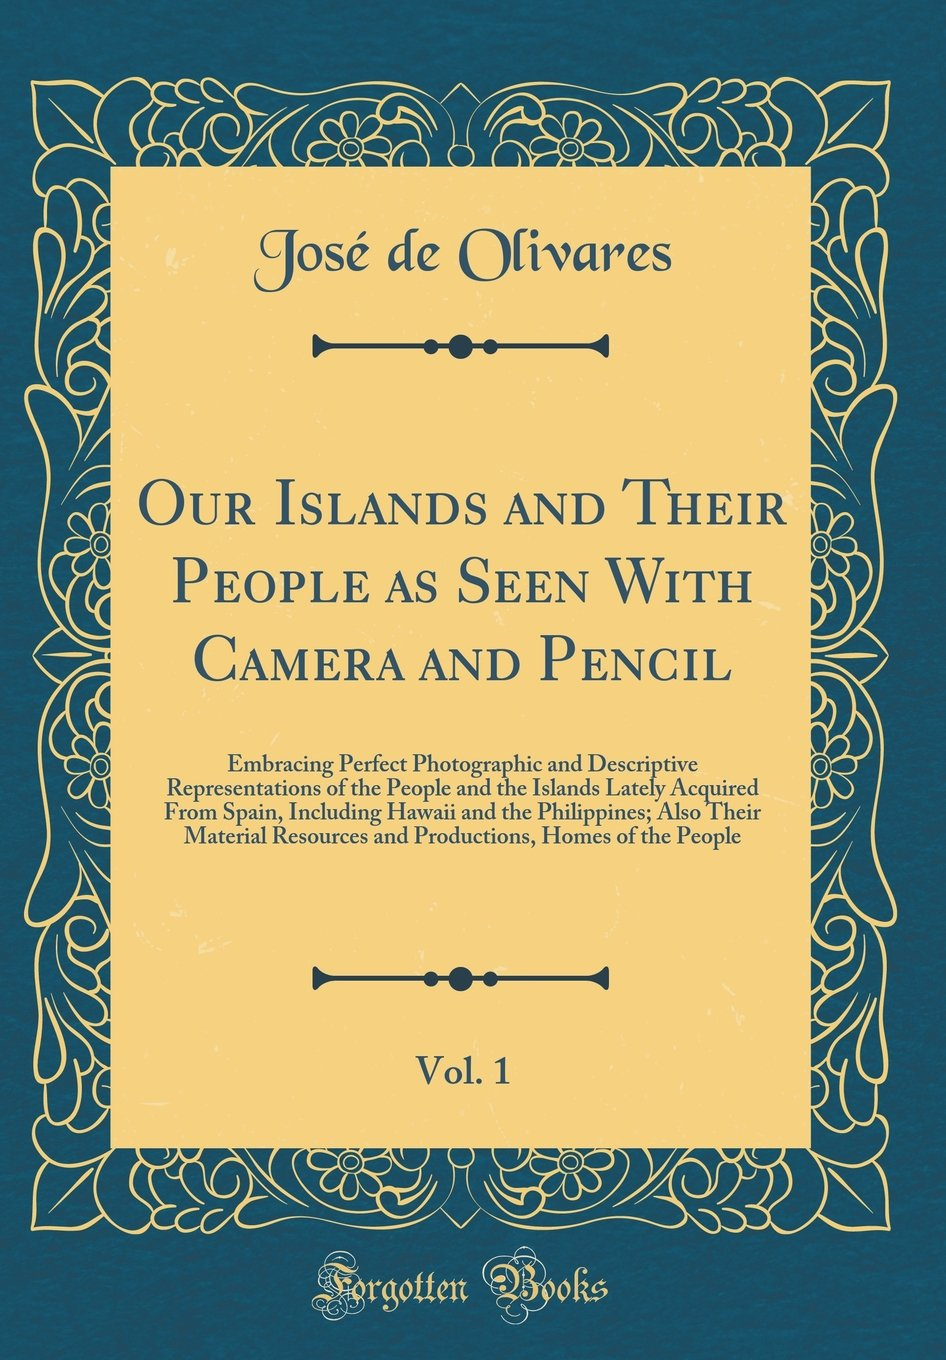 Our Islands and Their People as Seen With Camera and Pencil, Vol. 1: Embracing Perfect Photographic and Descriptive Representations of the People and ... the Philippines; Also Their Material Resourc Text fb2 book